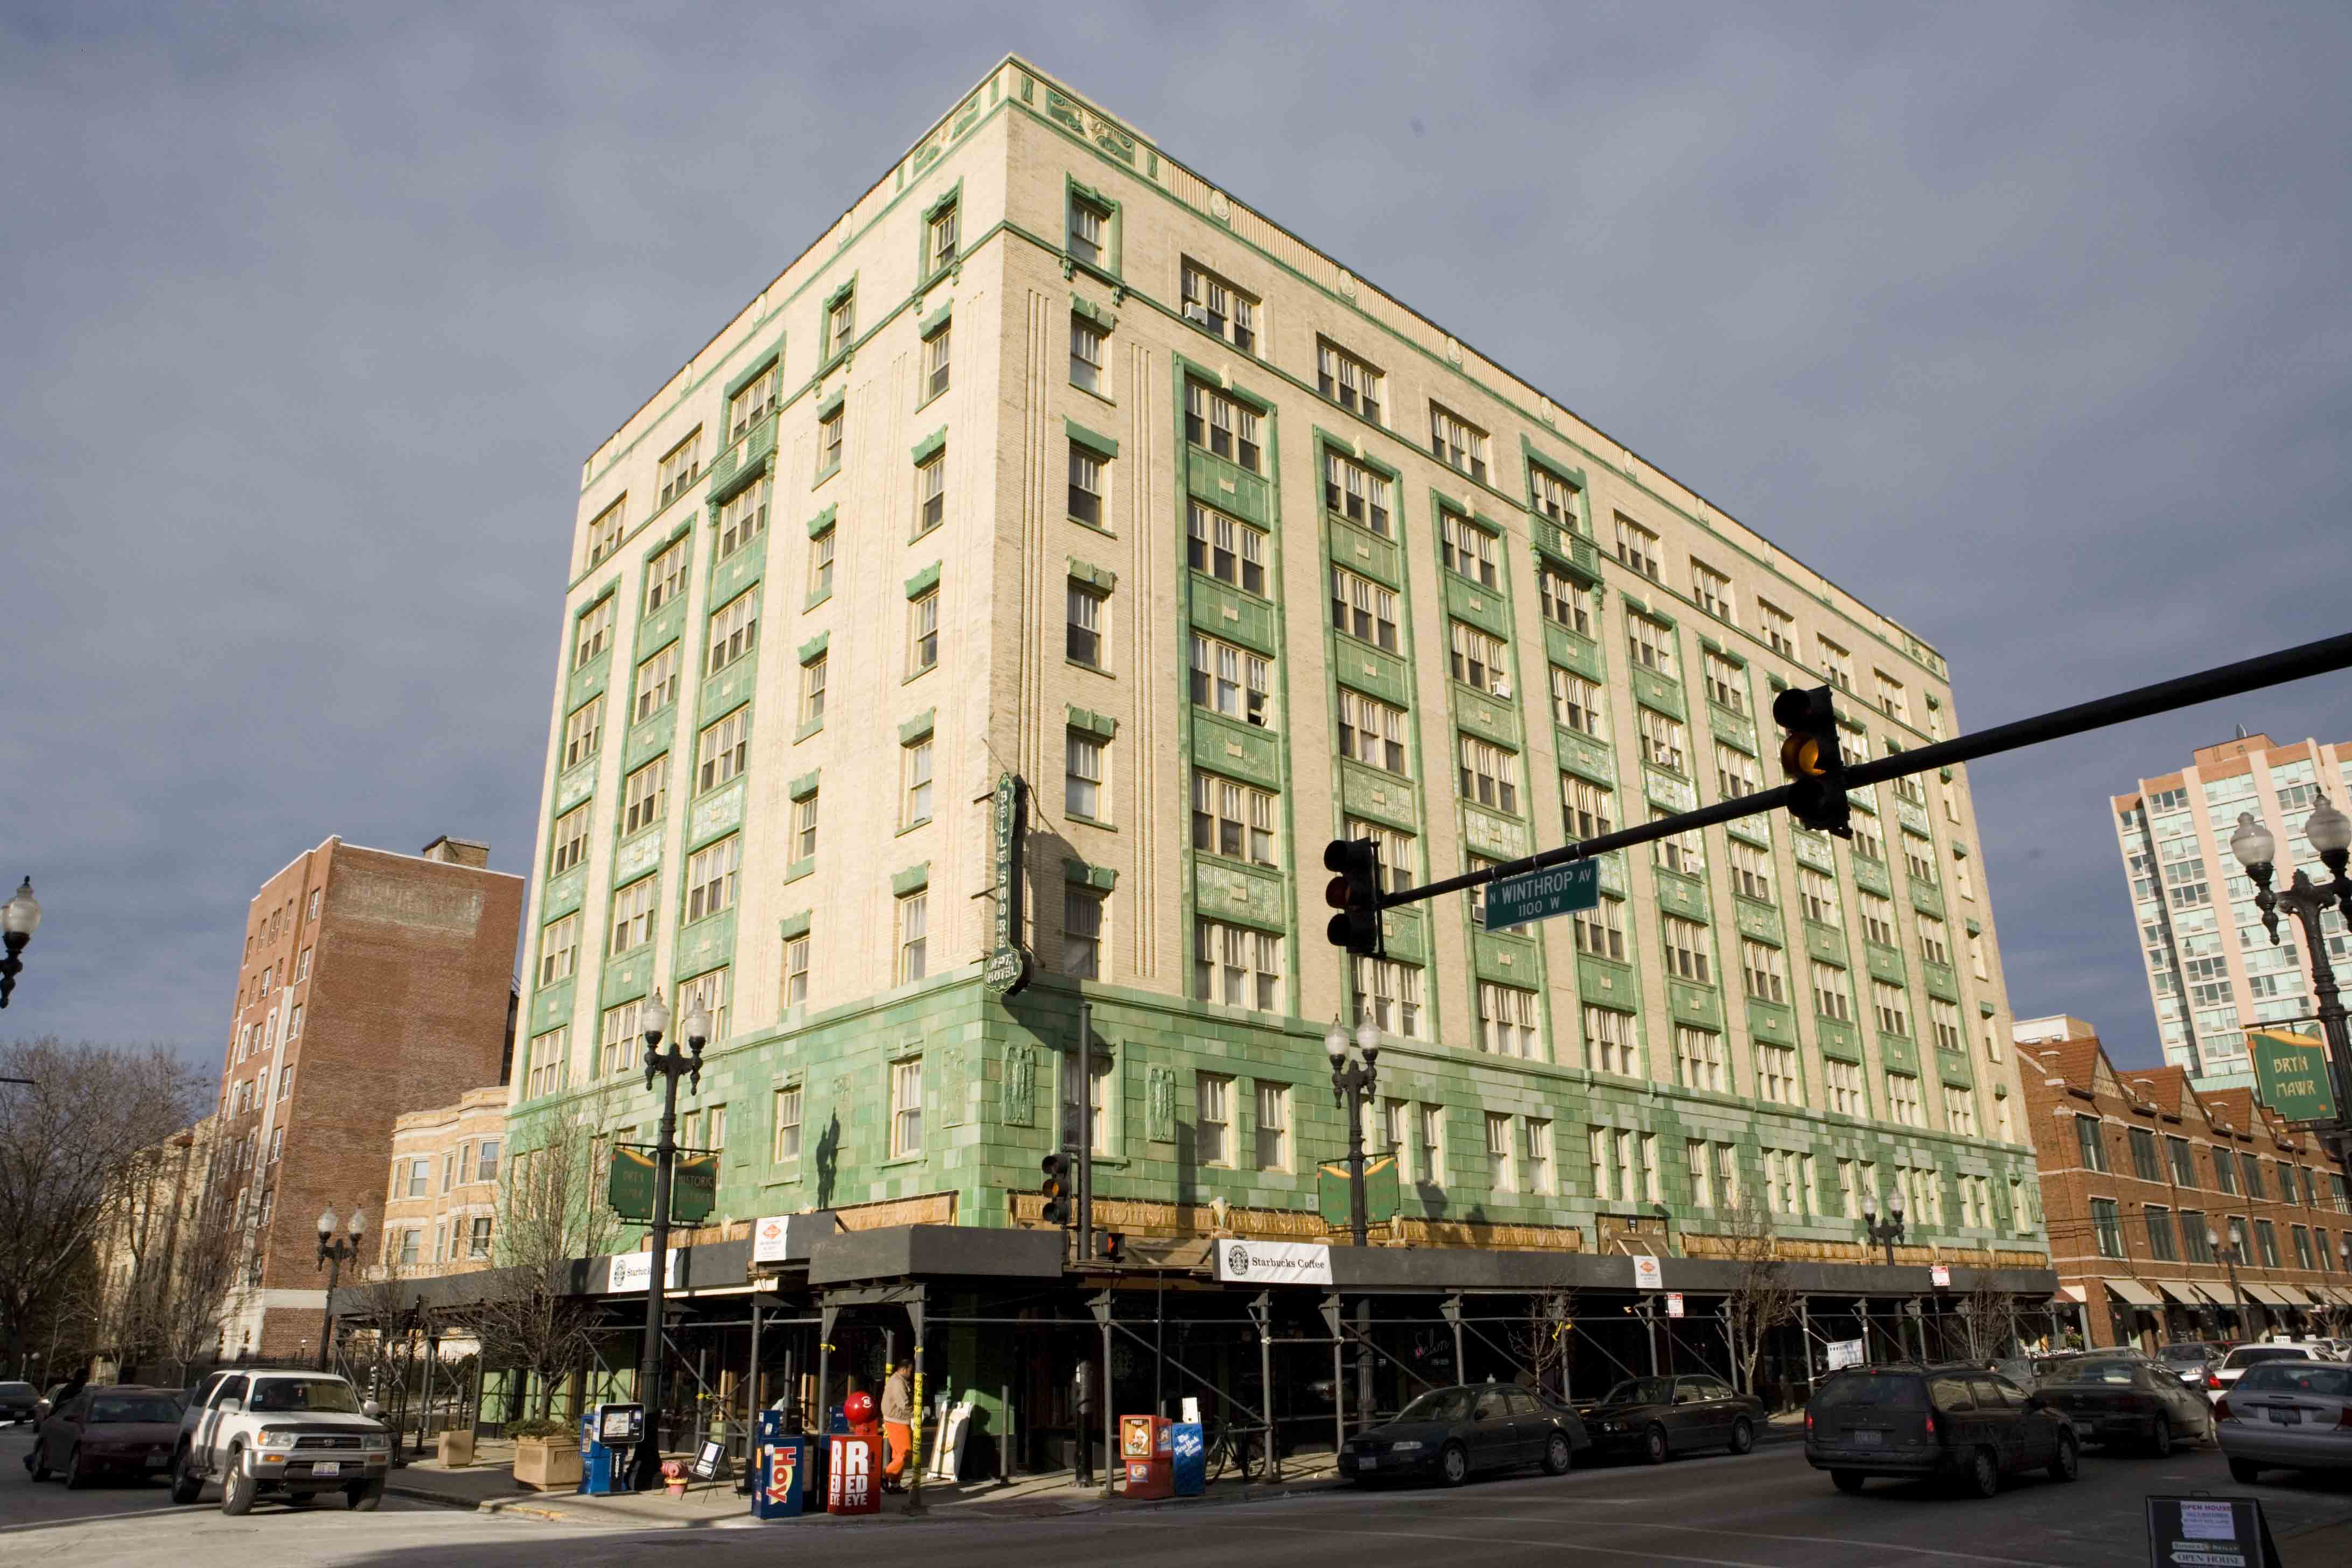 A Starbucks is located on the ground floor of the Belle Shore Apartments, which has a distinct green art deco facade and has been thoroughly renovated.